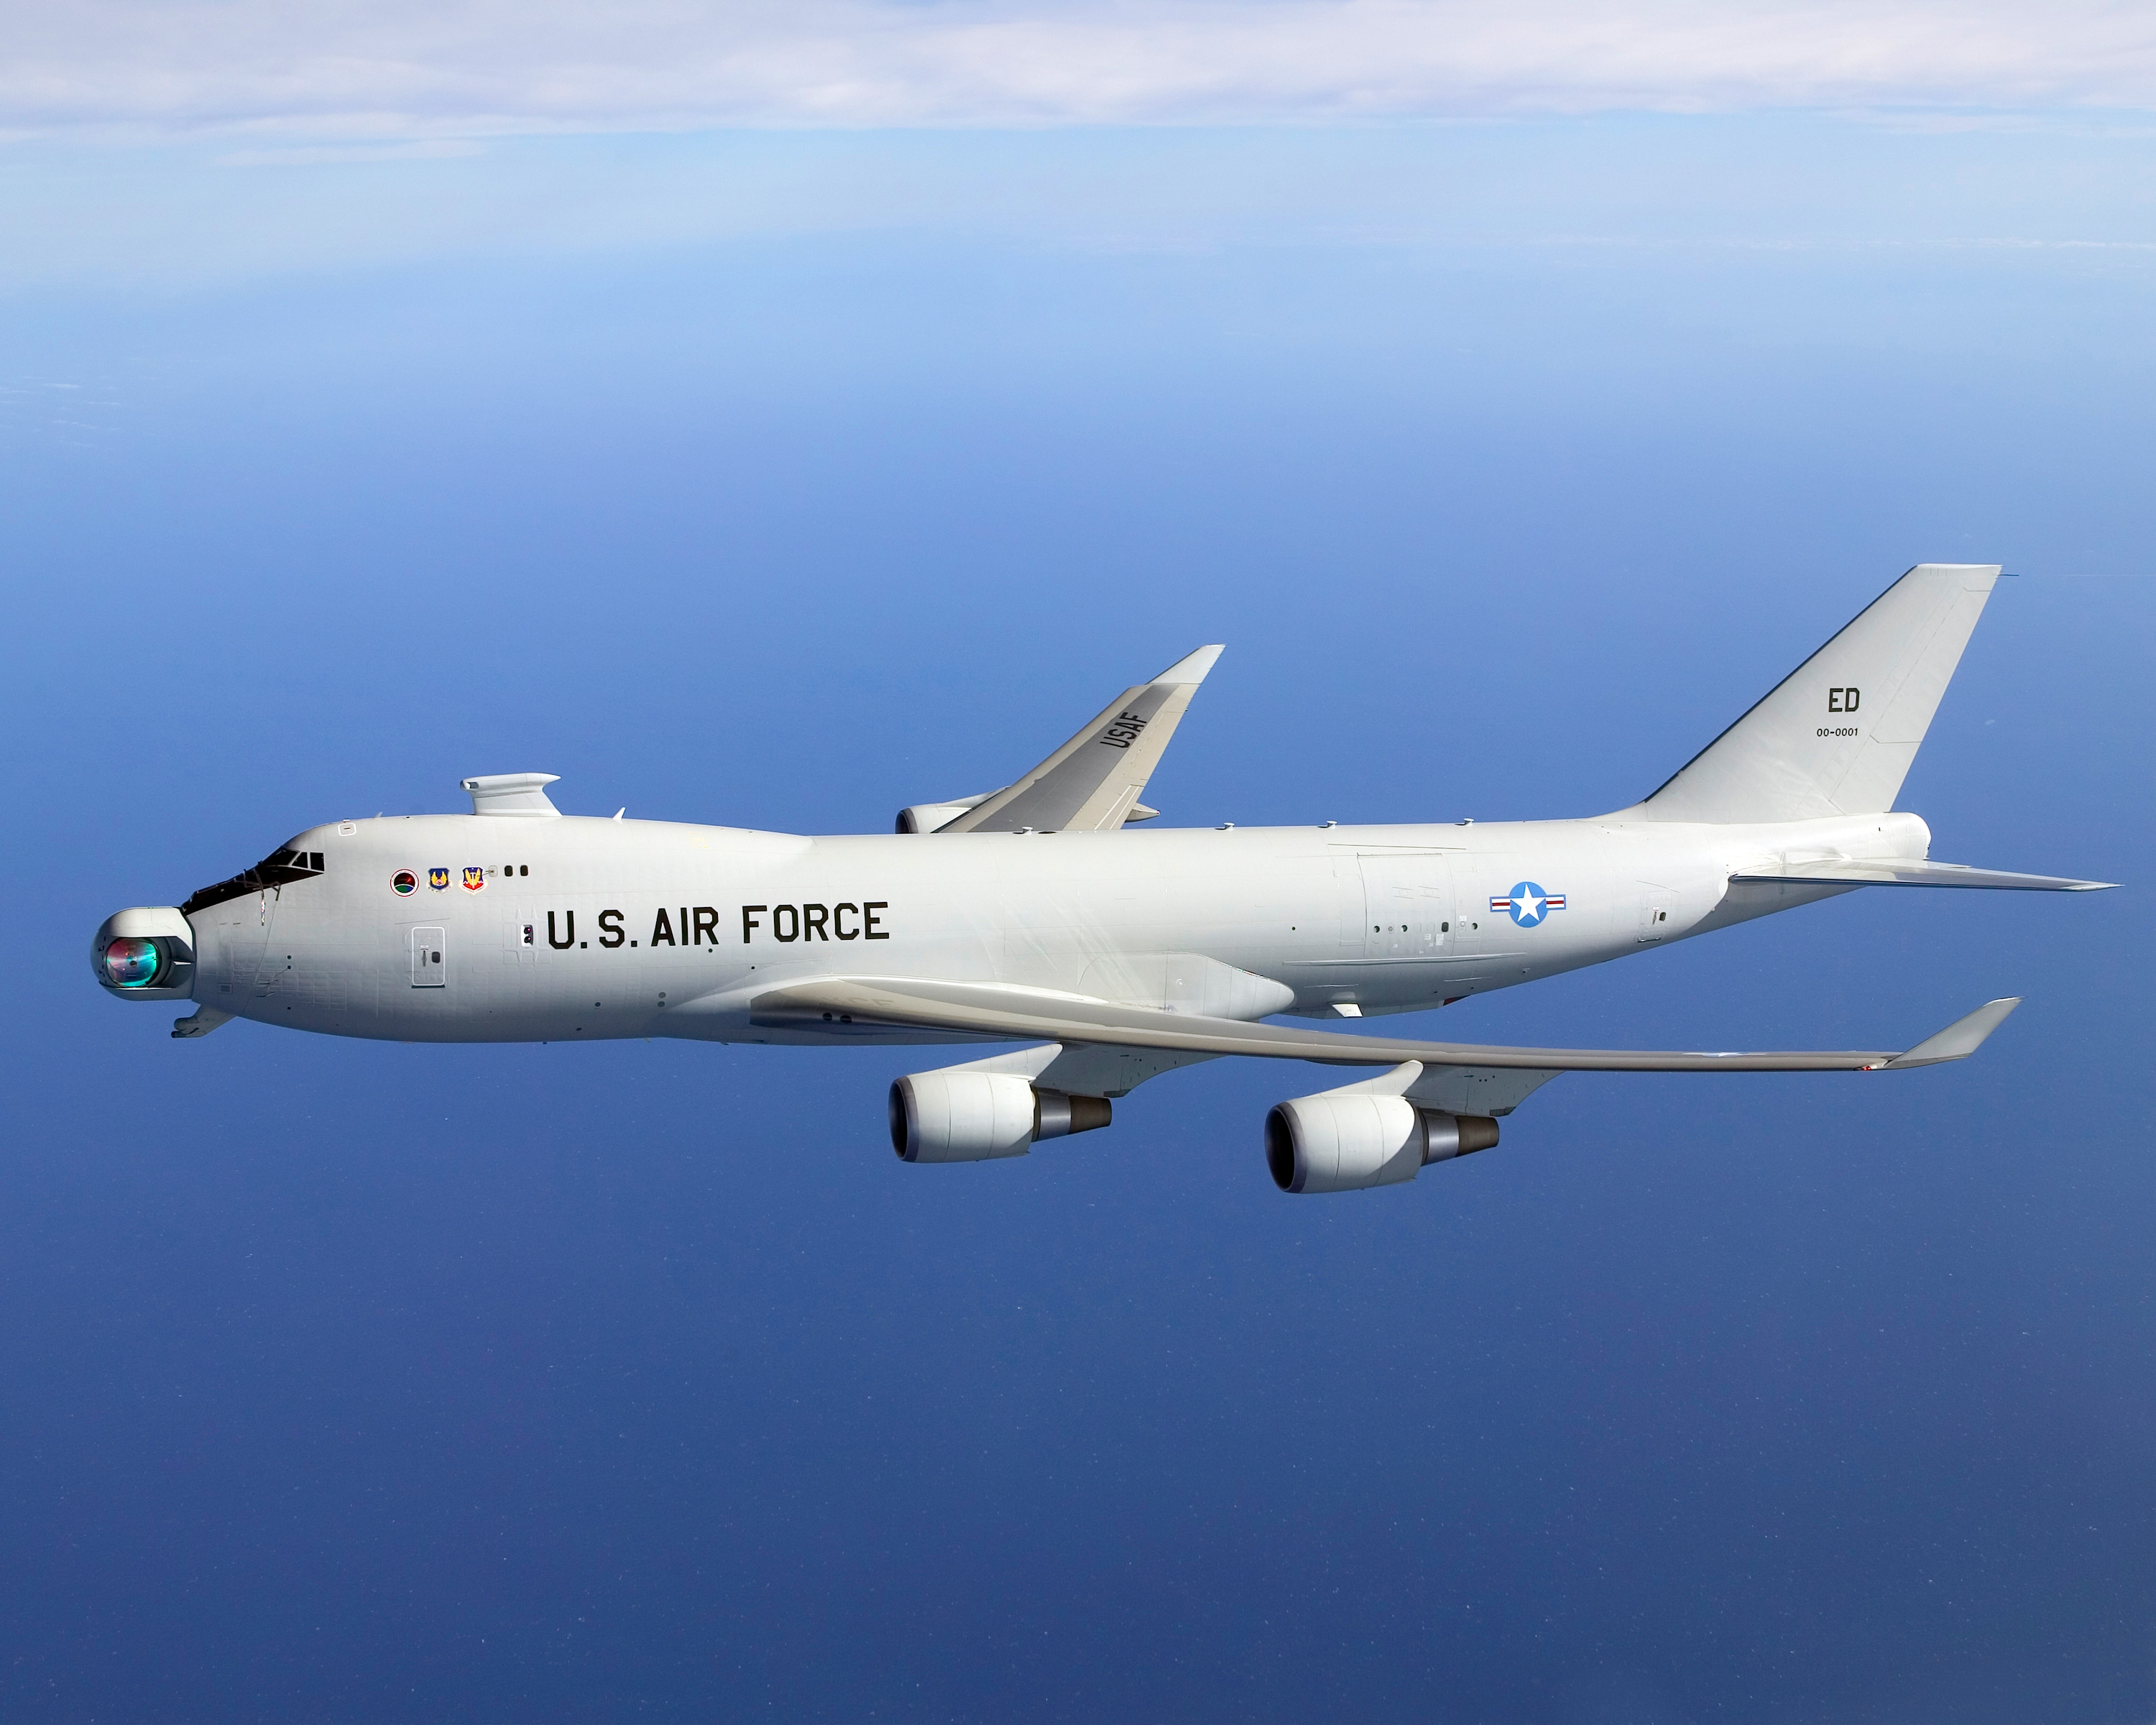 YAL-1 Airborne Laser Pictures, Images and Photos.